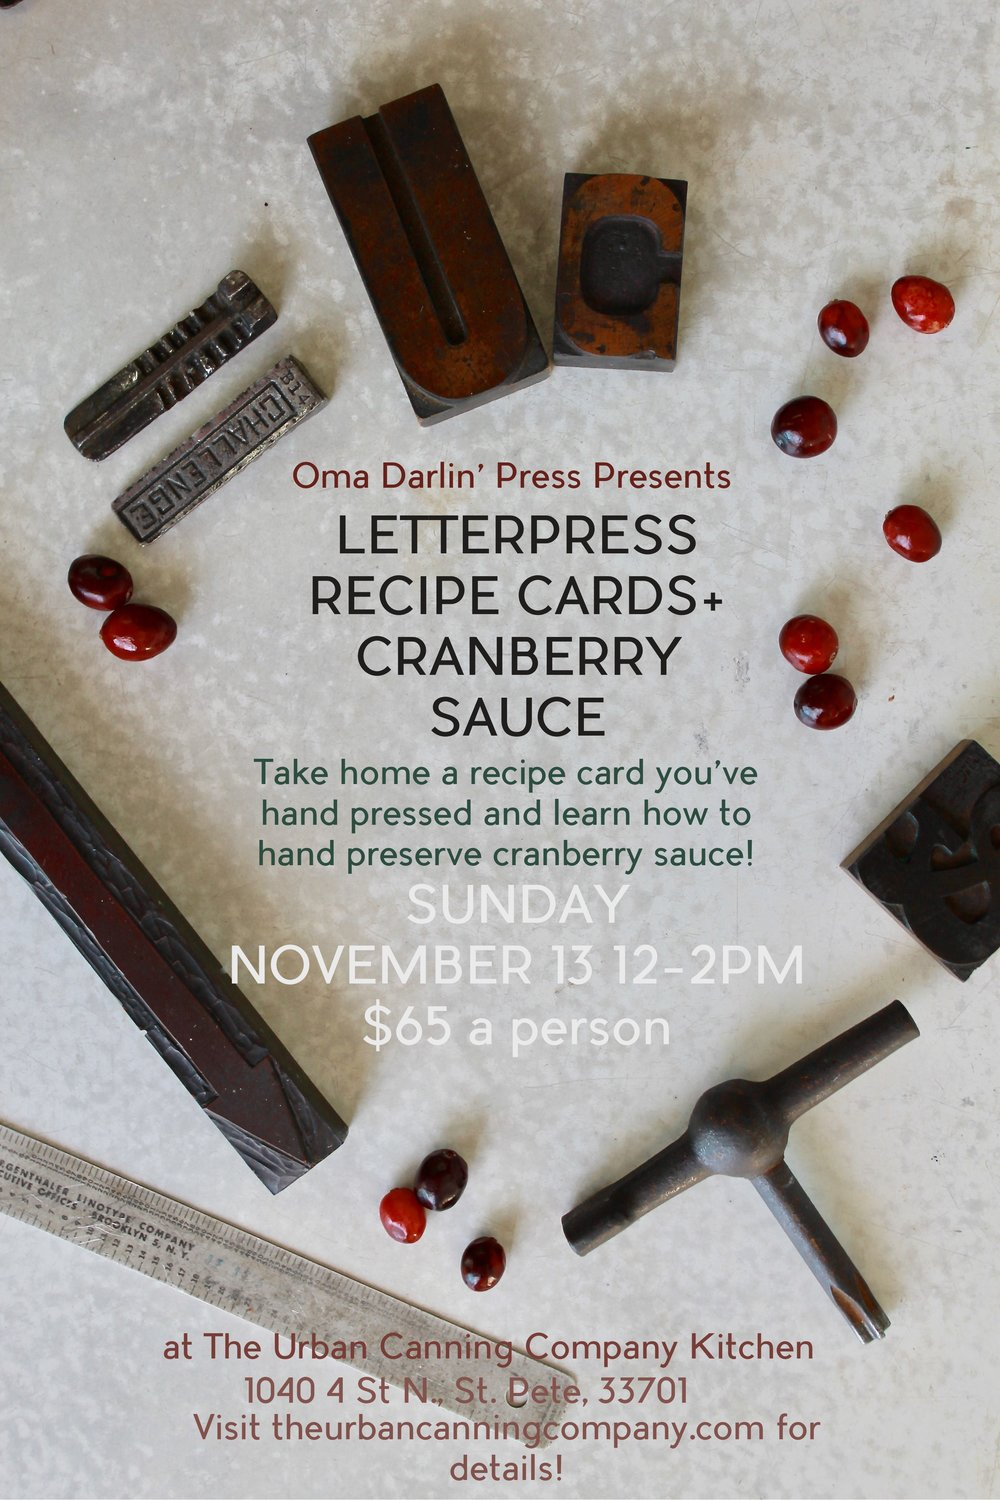 Just in time for Thanksgiving! Join us in our kitchen with Oma Darlin' press! She will be teaching how to hand letterpress your own recipe cards, and then The Urban Canning Company will teach you how to preserve your own cranberry sauce along with canning basics! Each student takes home the recipe cards they press, a jar of cranberry sauce we make, as well as take home instructions and recipes for canning cranberry sauce! The class is $65 a person and you can purchase your seat here: https://squareup.com/store/theurbancanningcompany